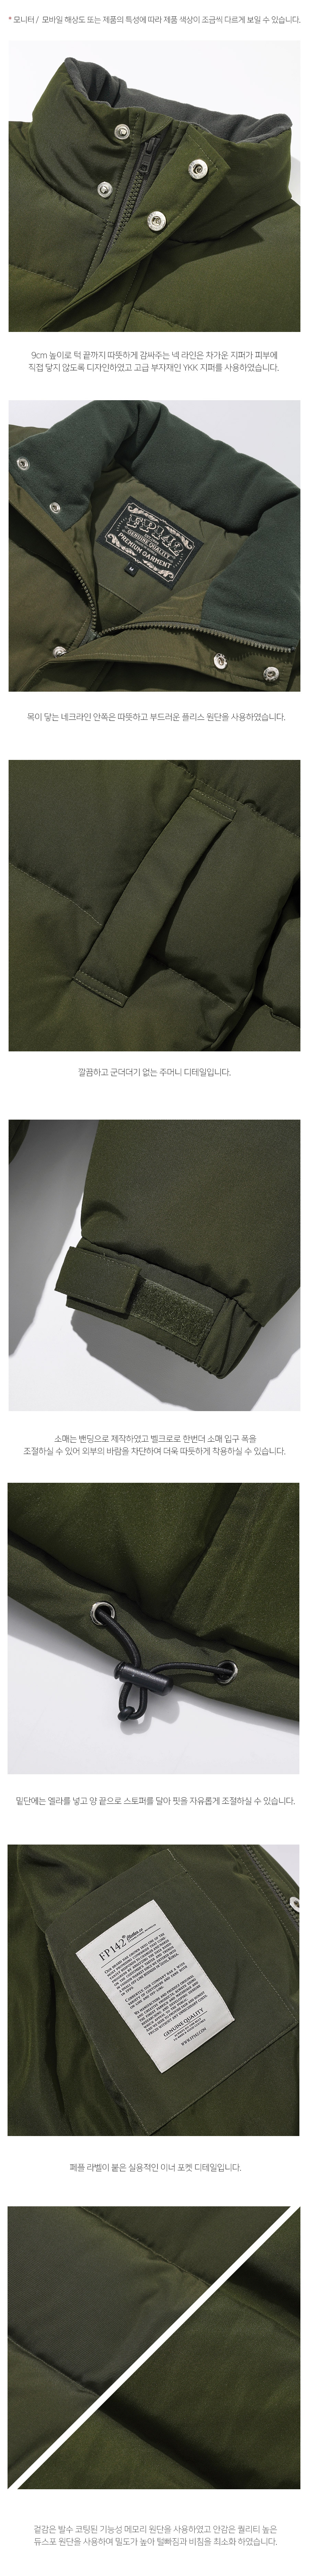 5_KHOT1278_detail_color_khaki2_sj.jpg